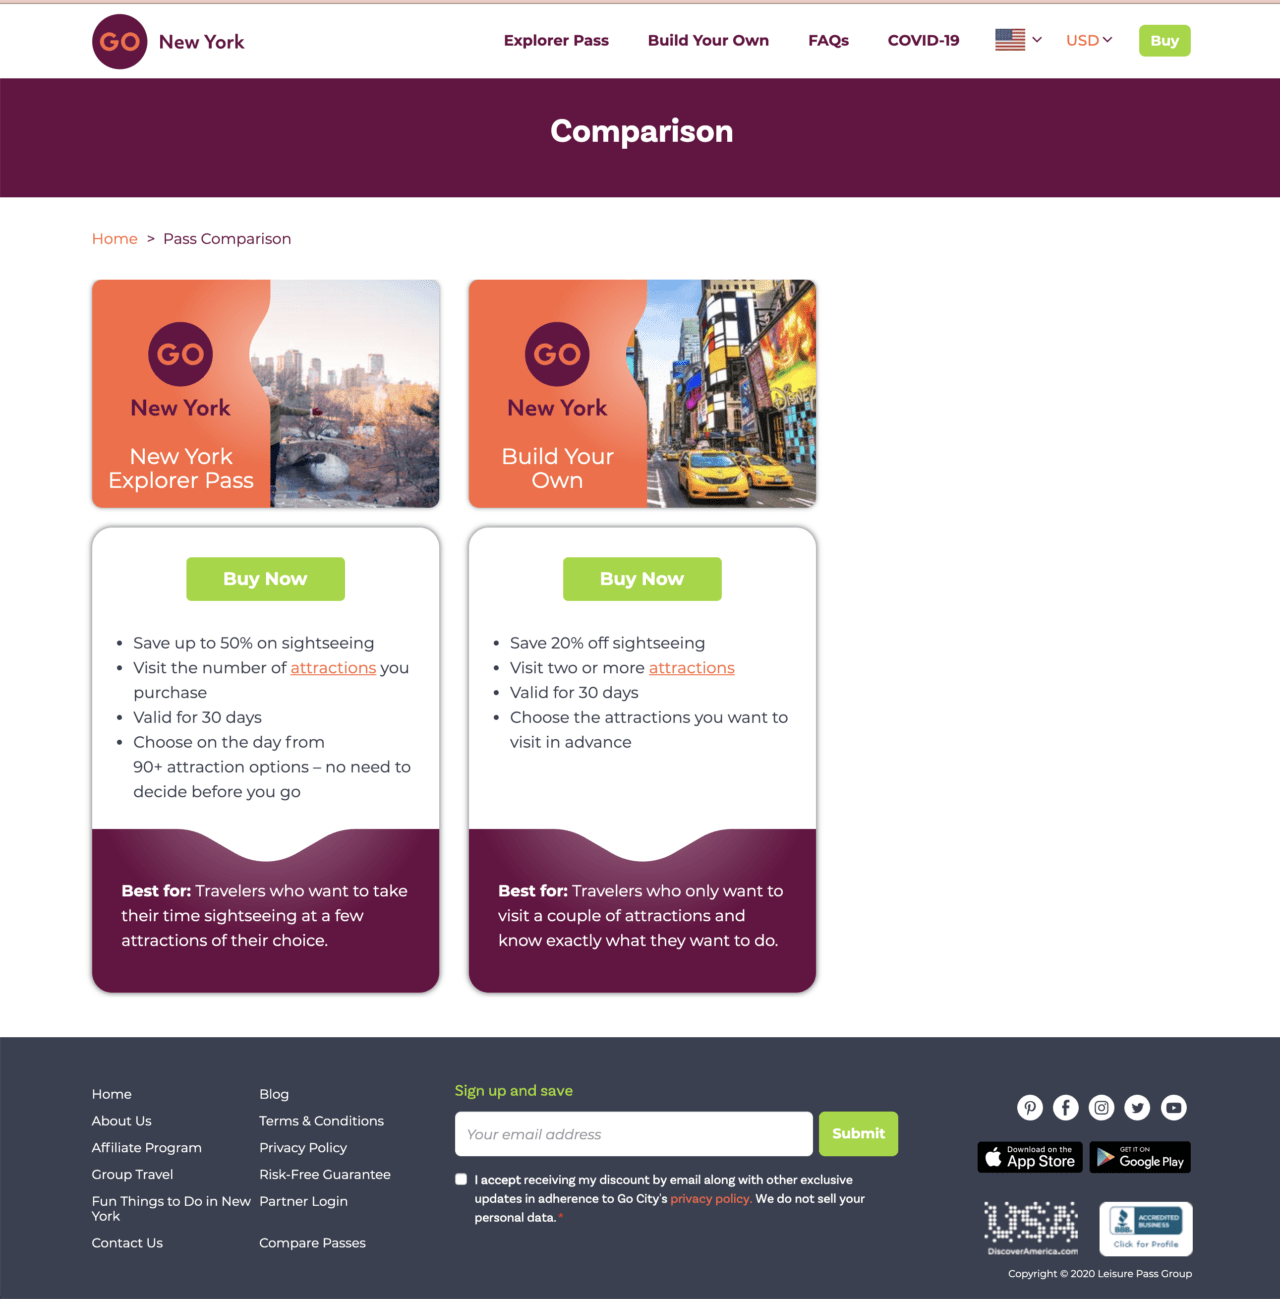 Go New York Explorer Pass – Option to pick Explorer Pass or Build Your Own